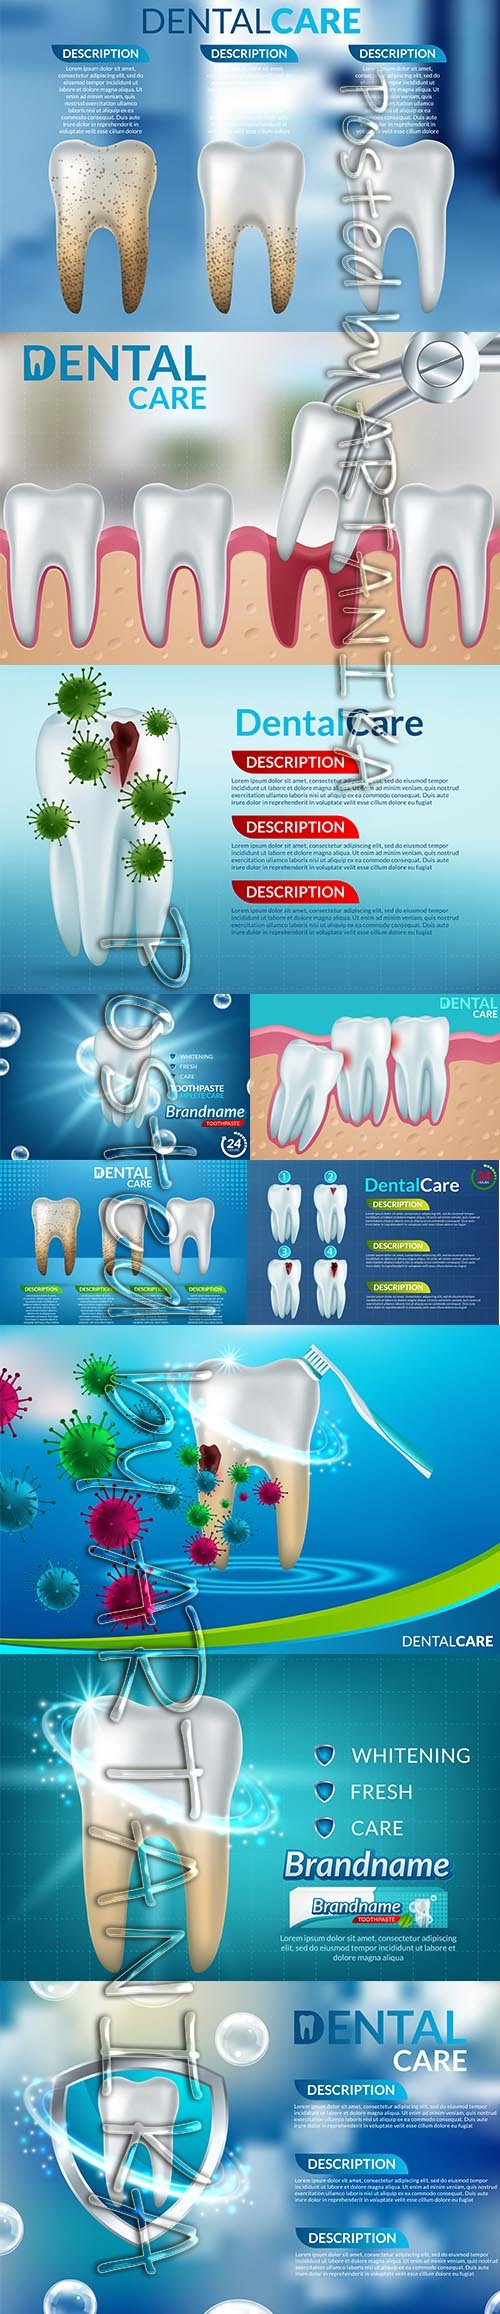 Collection of Dental Care Teeth Illustration